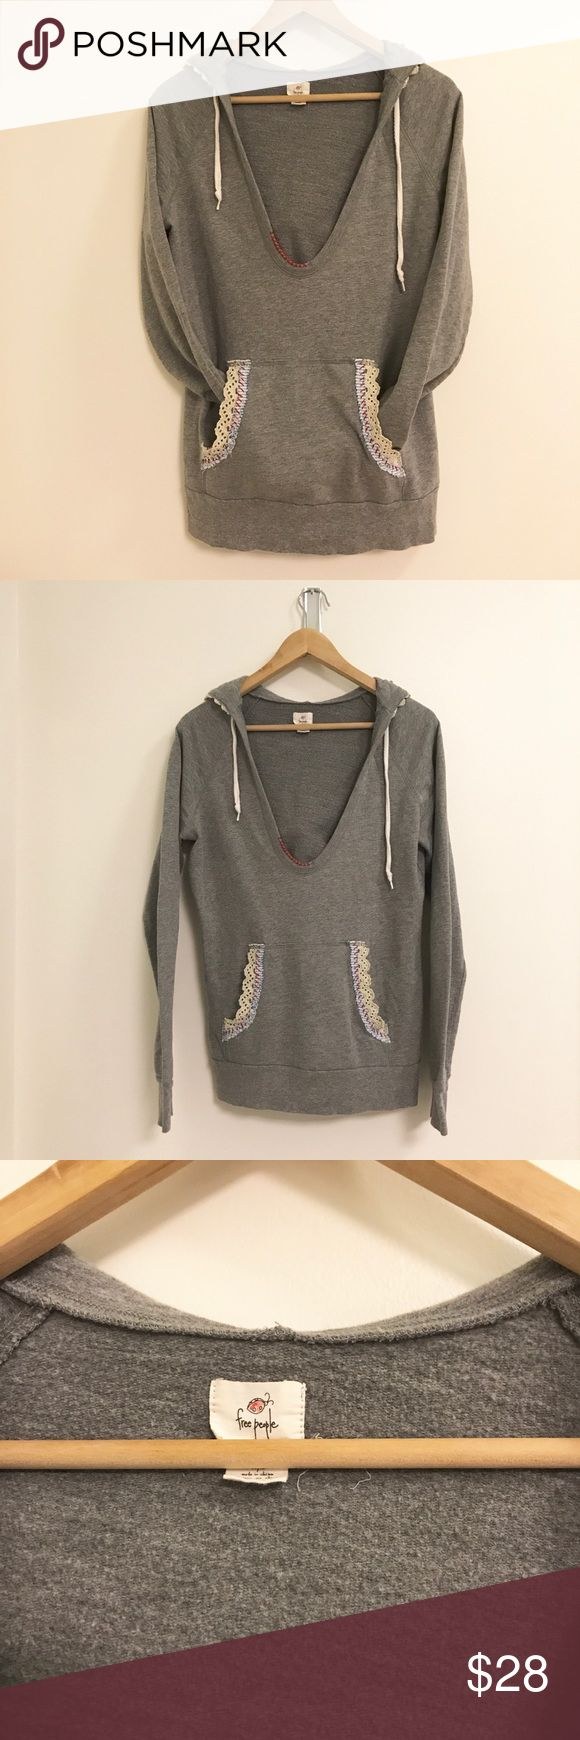 Free People Gray Hoodie Free People Allure Pull Over - Free People - Medium - Beige - Oversize slouchy fit - Perfect Condition Free People Tops Sweatshirts & Hoodies